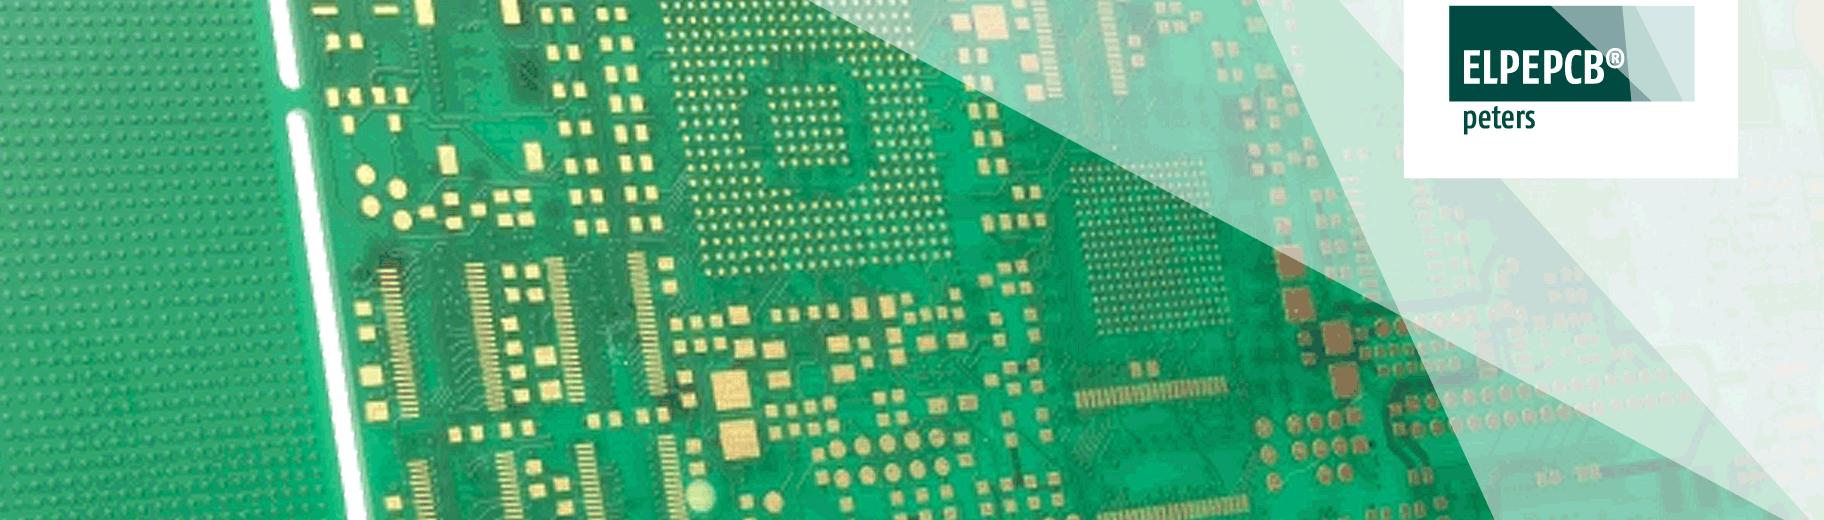 ELPEPCB® printed circuit coatings